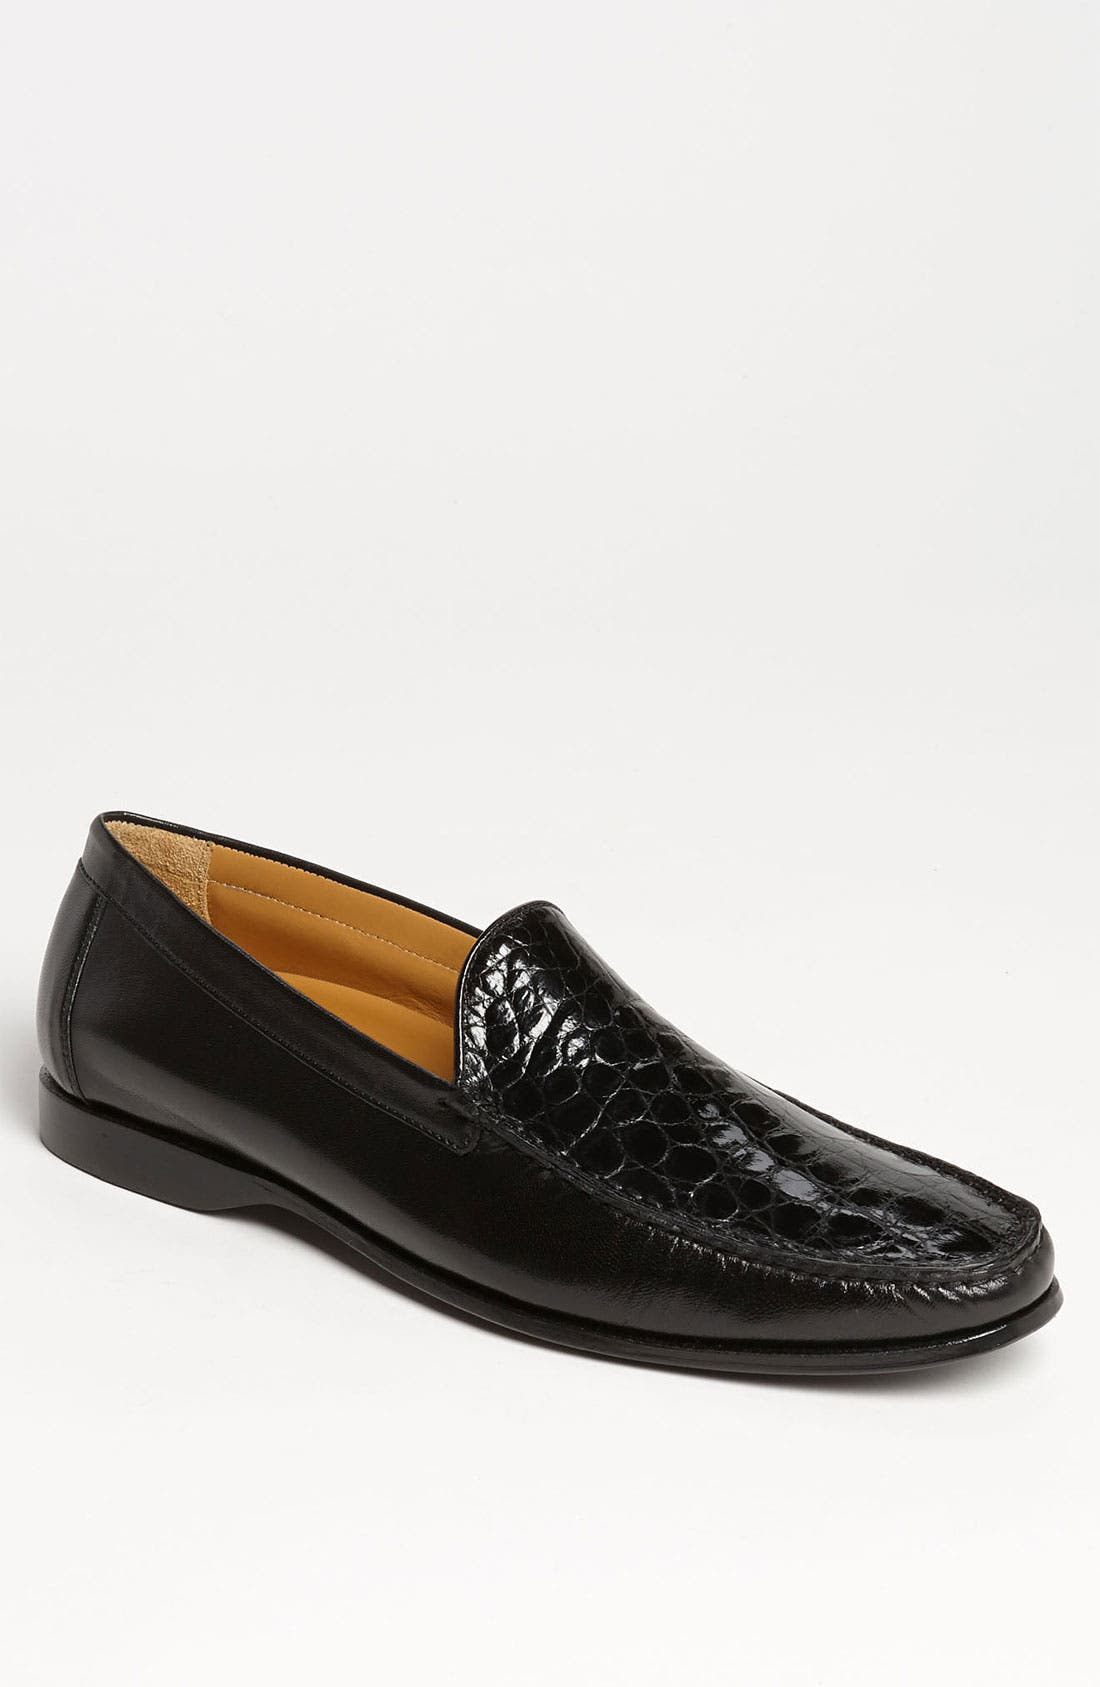 'Costanzo' Loafer,                             Main thumbnail 1, color,                             001